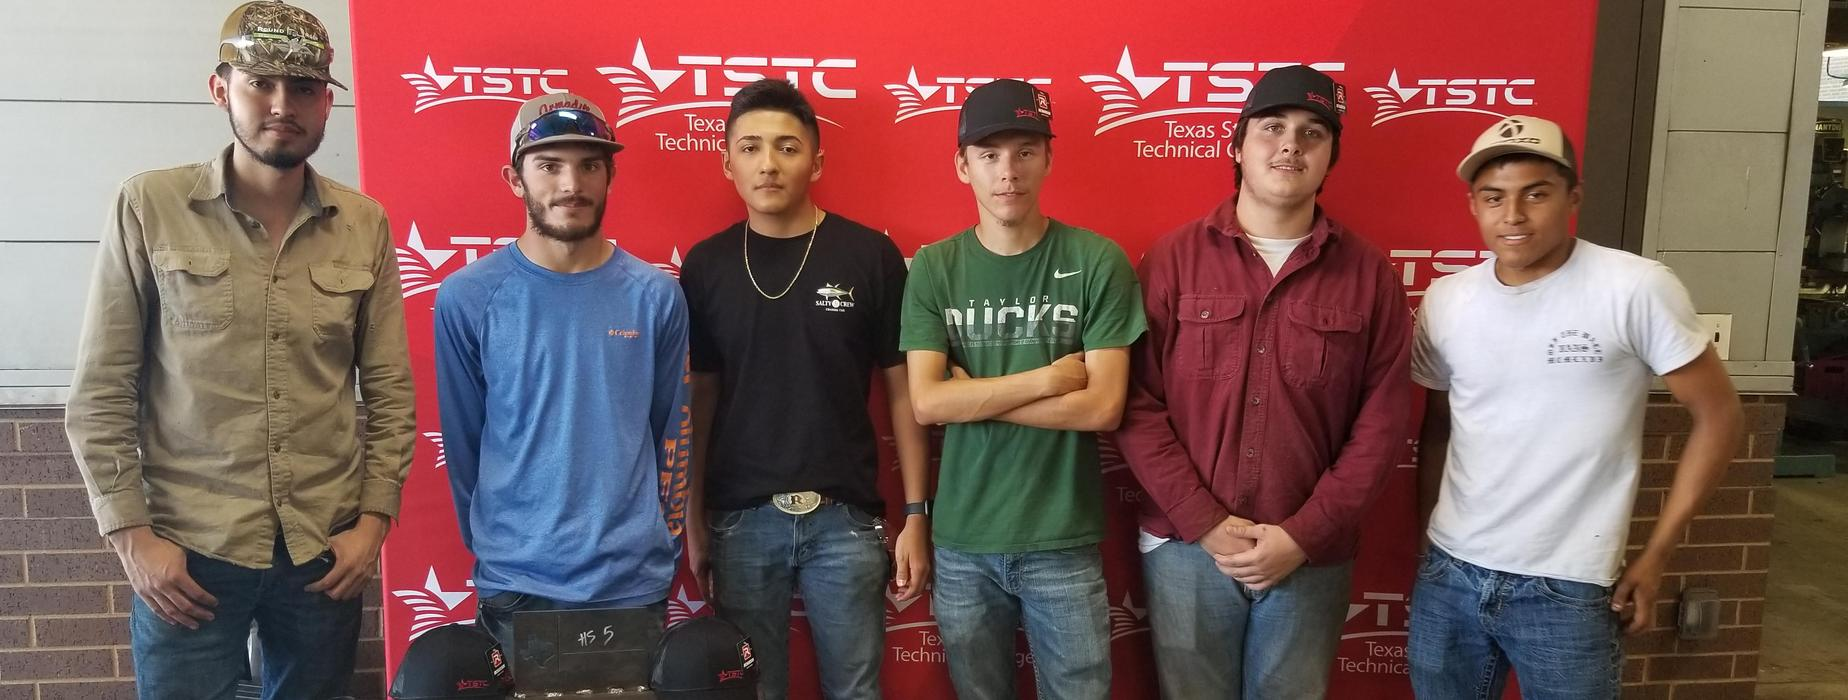 TSTC Welding Competition 2019 in Hutto